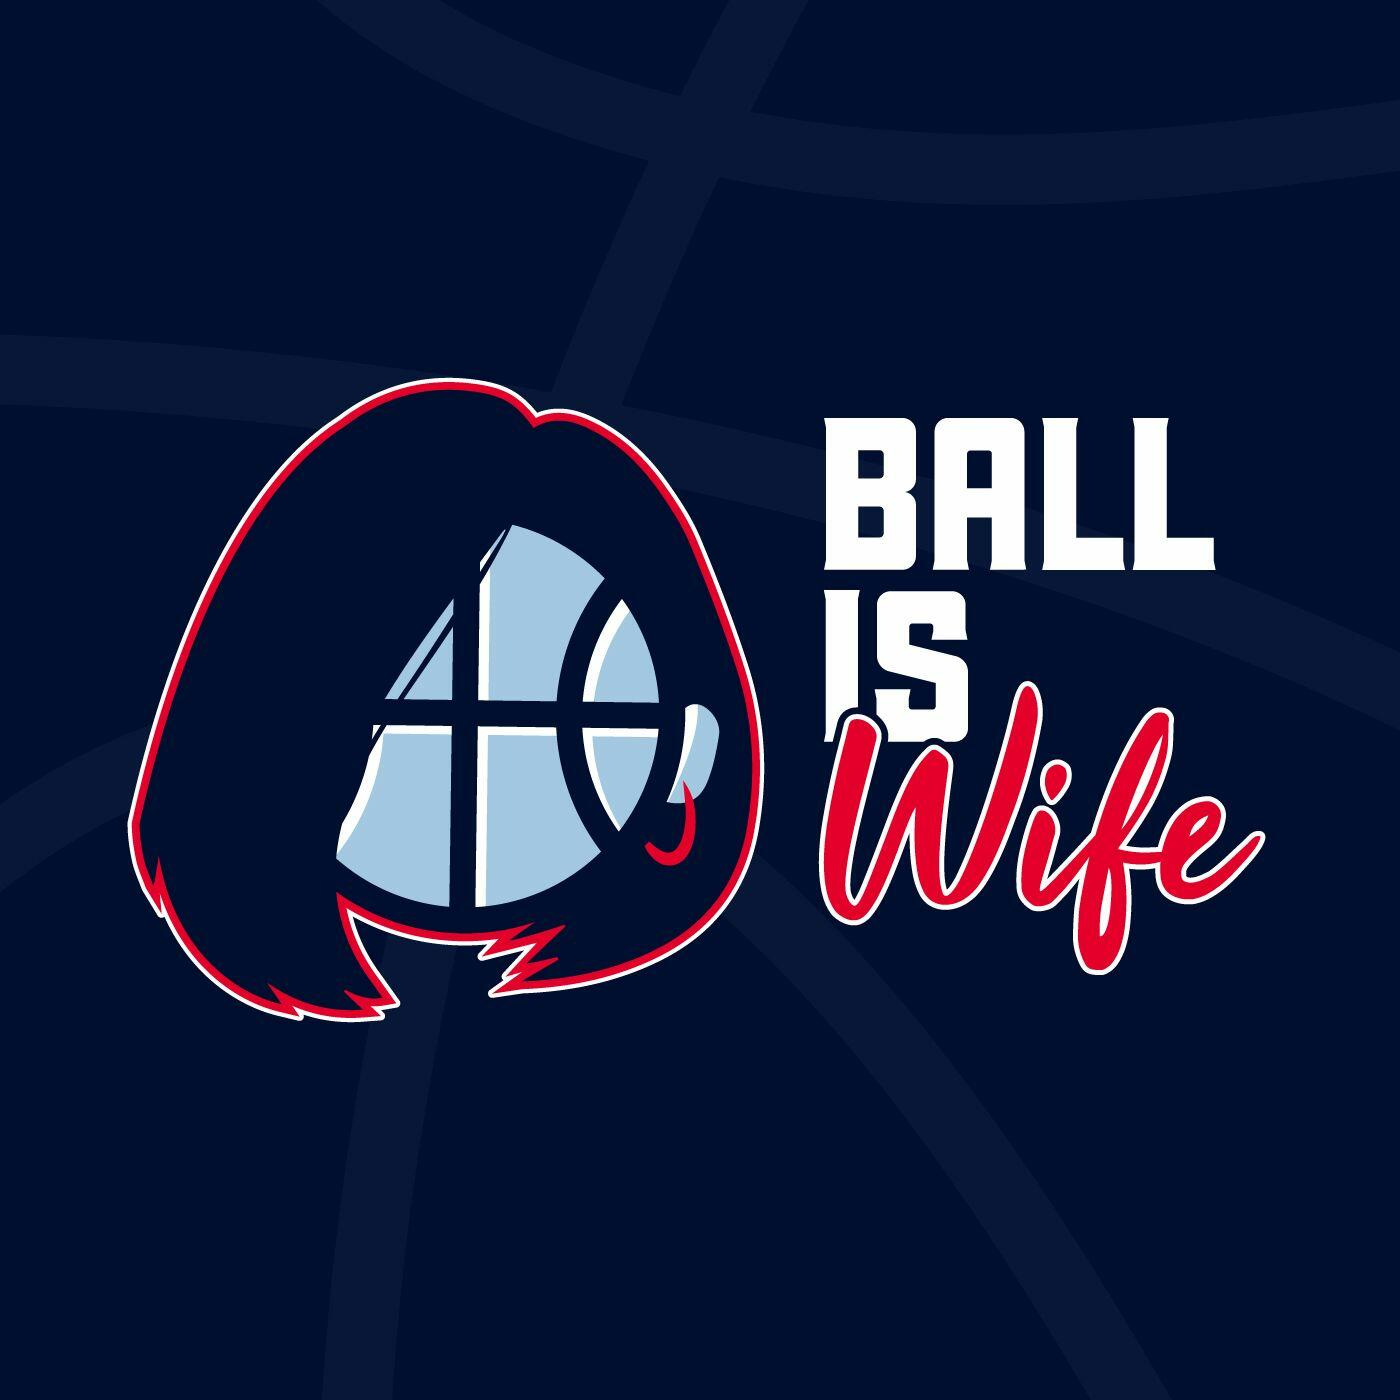 Ball is Wife